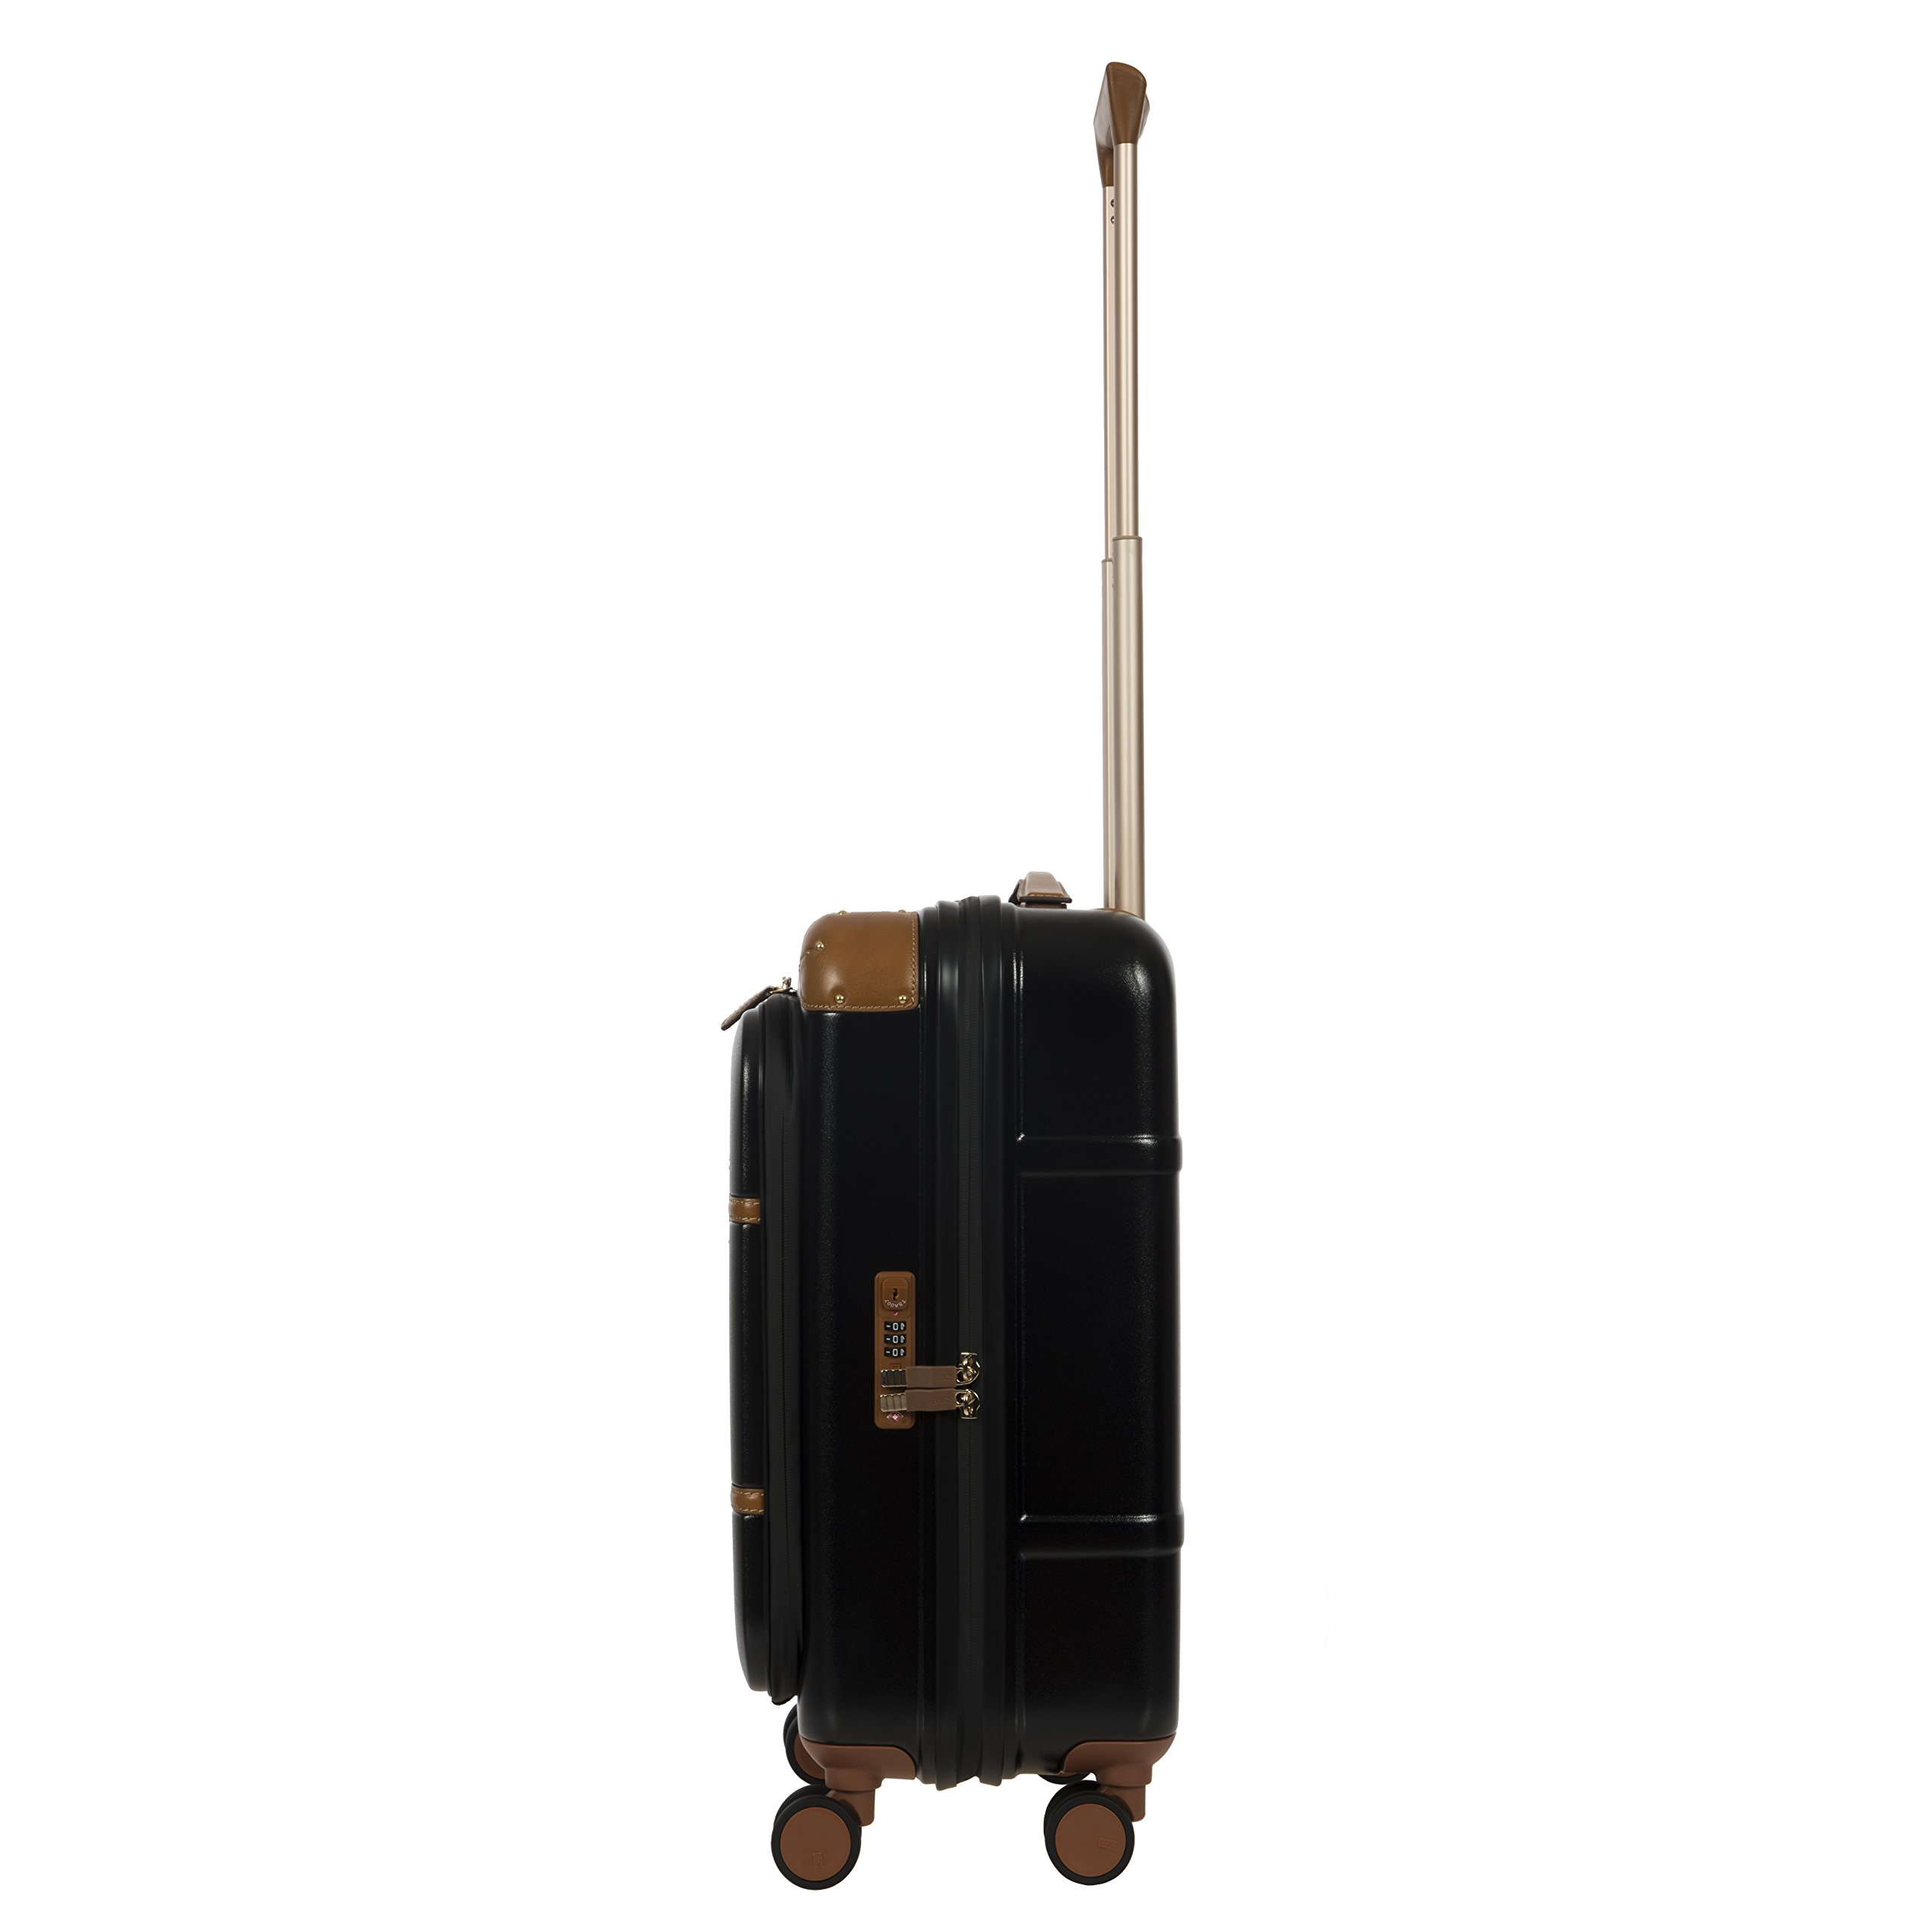 Bellagio 2.0 Ultra Light 21 Inch Carry On Business Spinner Trunk with Pocket by Bric's (Image #3)